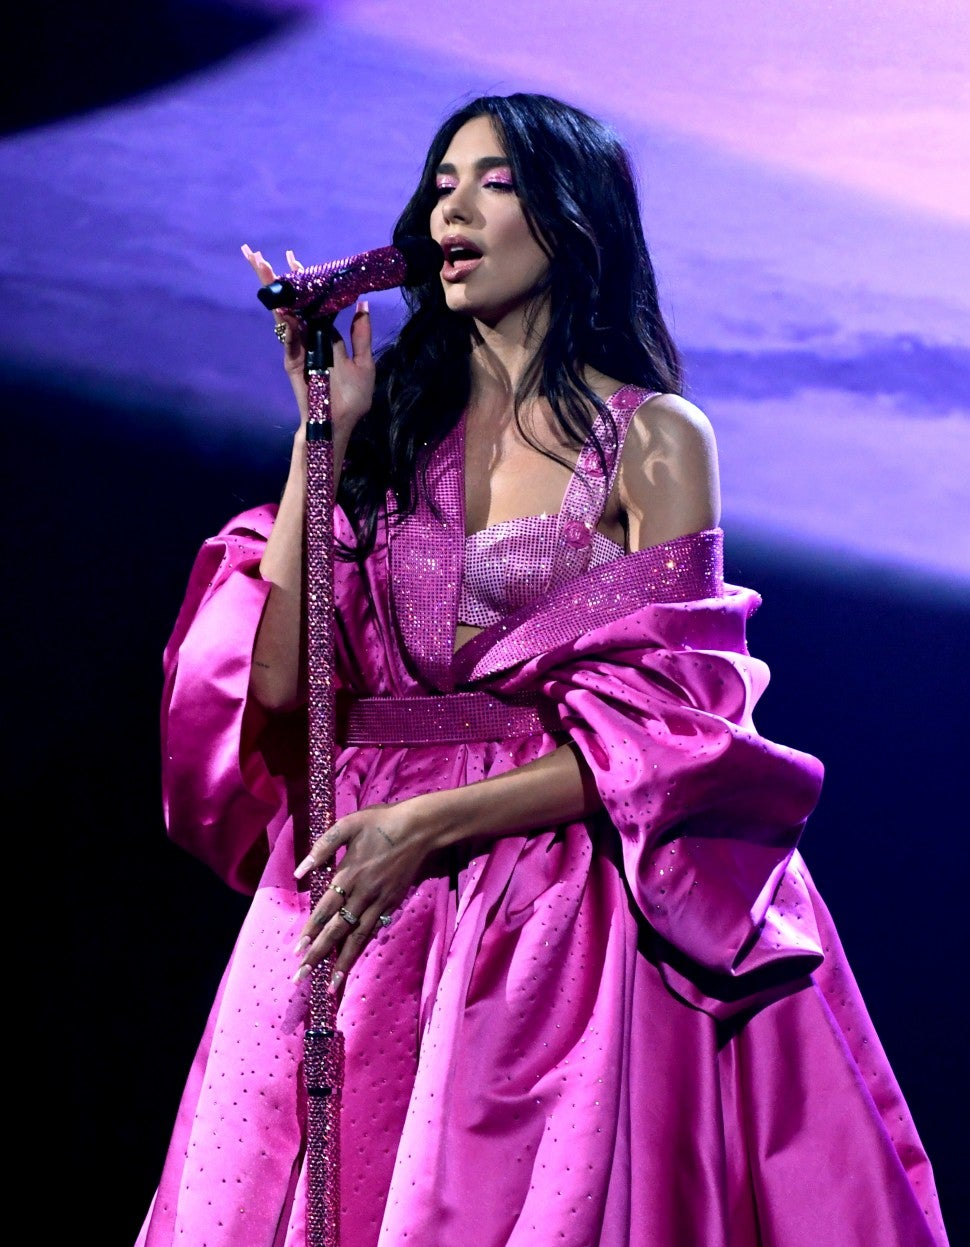 Dua Lipa Sparkles With 'Levitating' Performance Featuring DaBaby at 2021  GRAMMY Awards | Entertainment Tonight